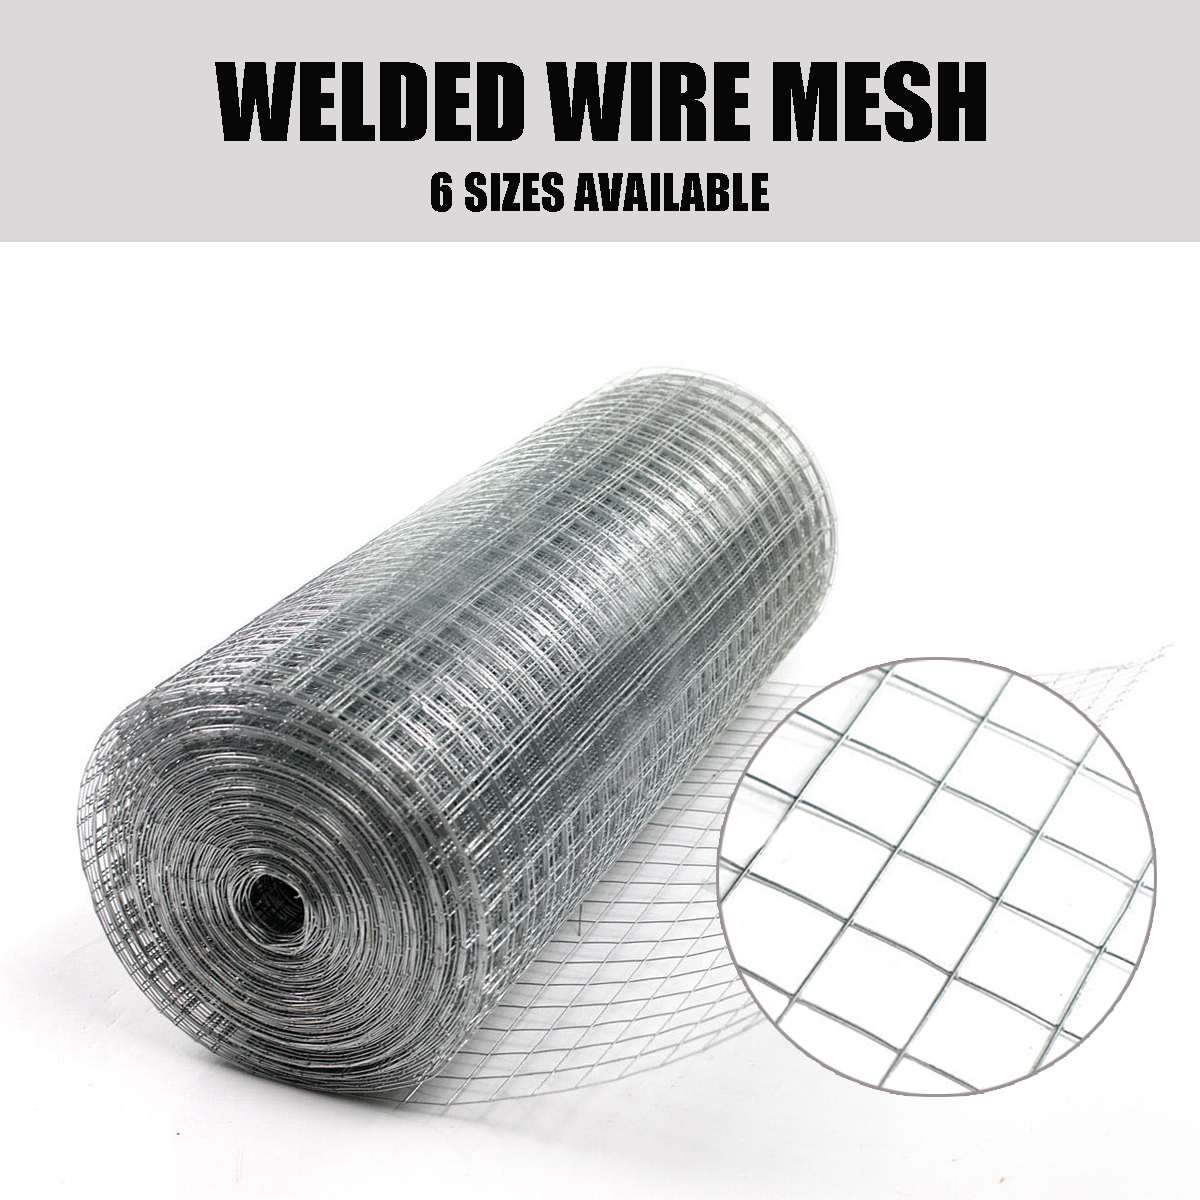 Welded Galvanised Wire Mesh Fence 1x1 Inch Aviary Rabbit Hutch Chicken Coop PetWelded Galvanised Wire Mesh Fence 1x1 Inch Aviary Rabbit Hutch Chicken Coop Pet